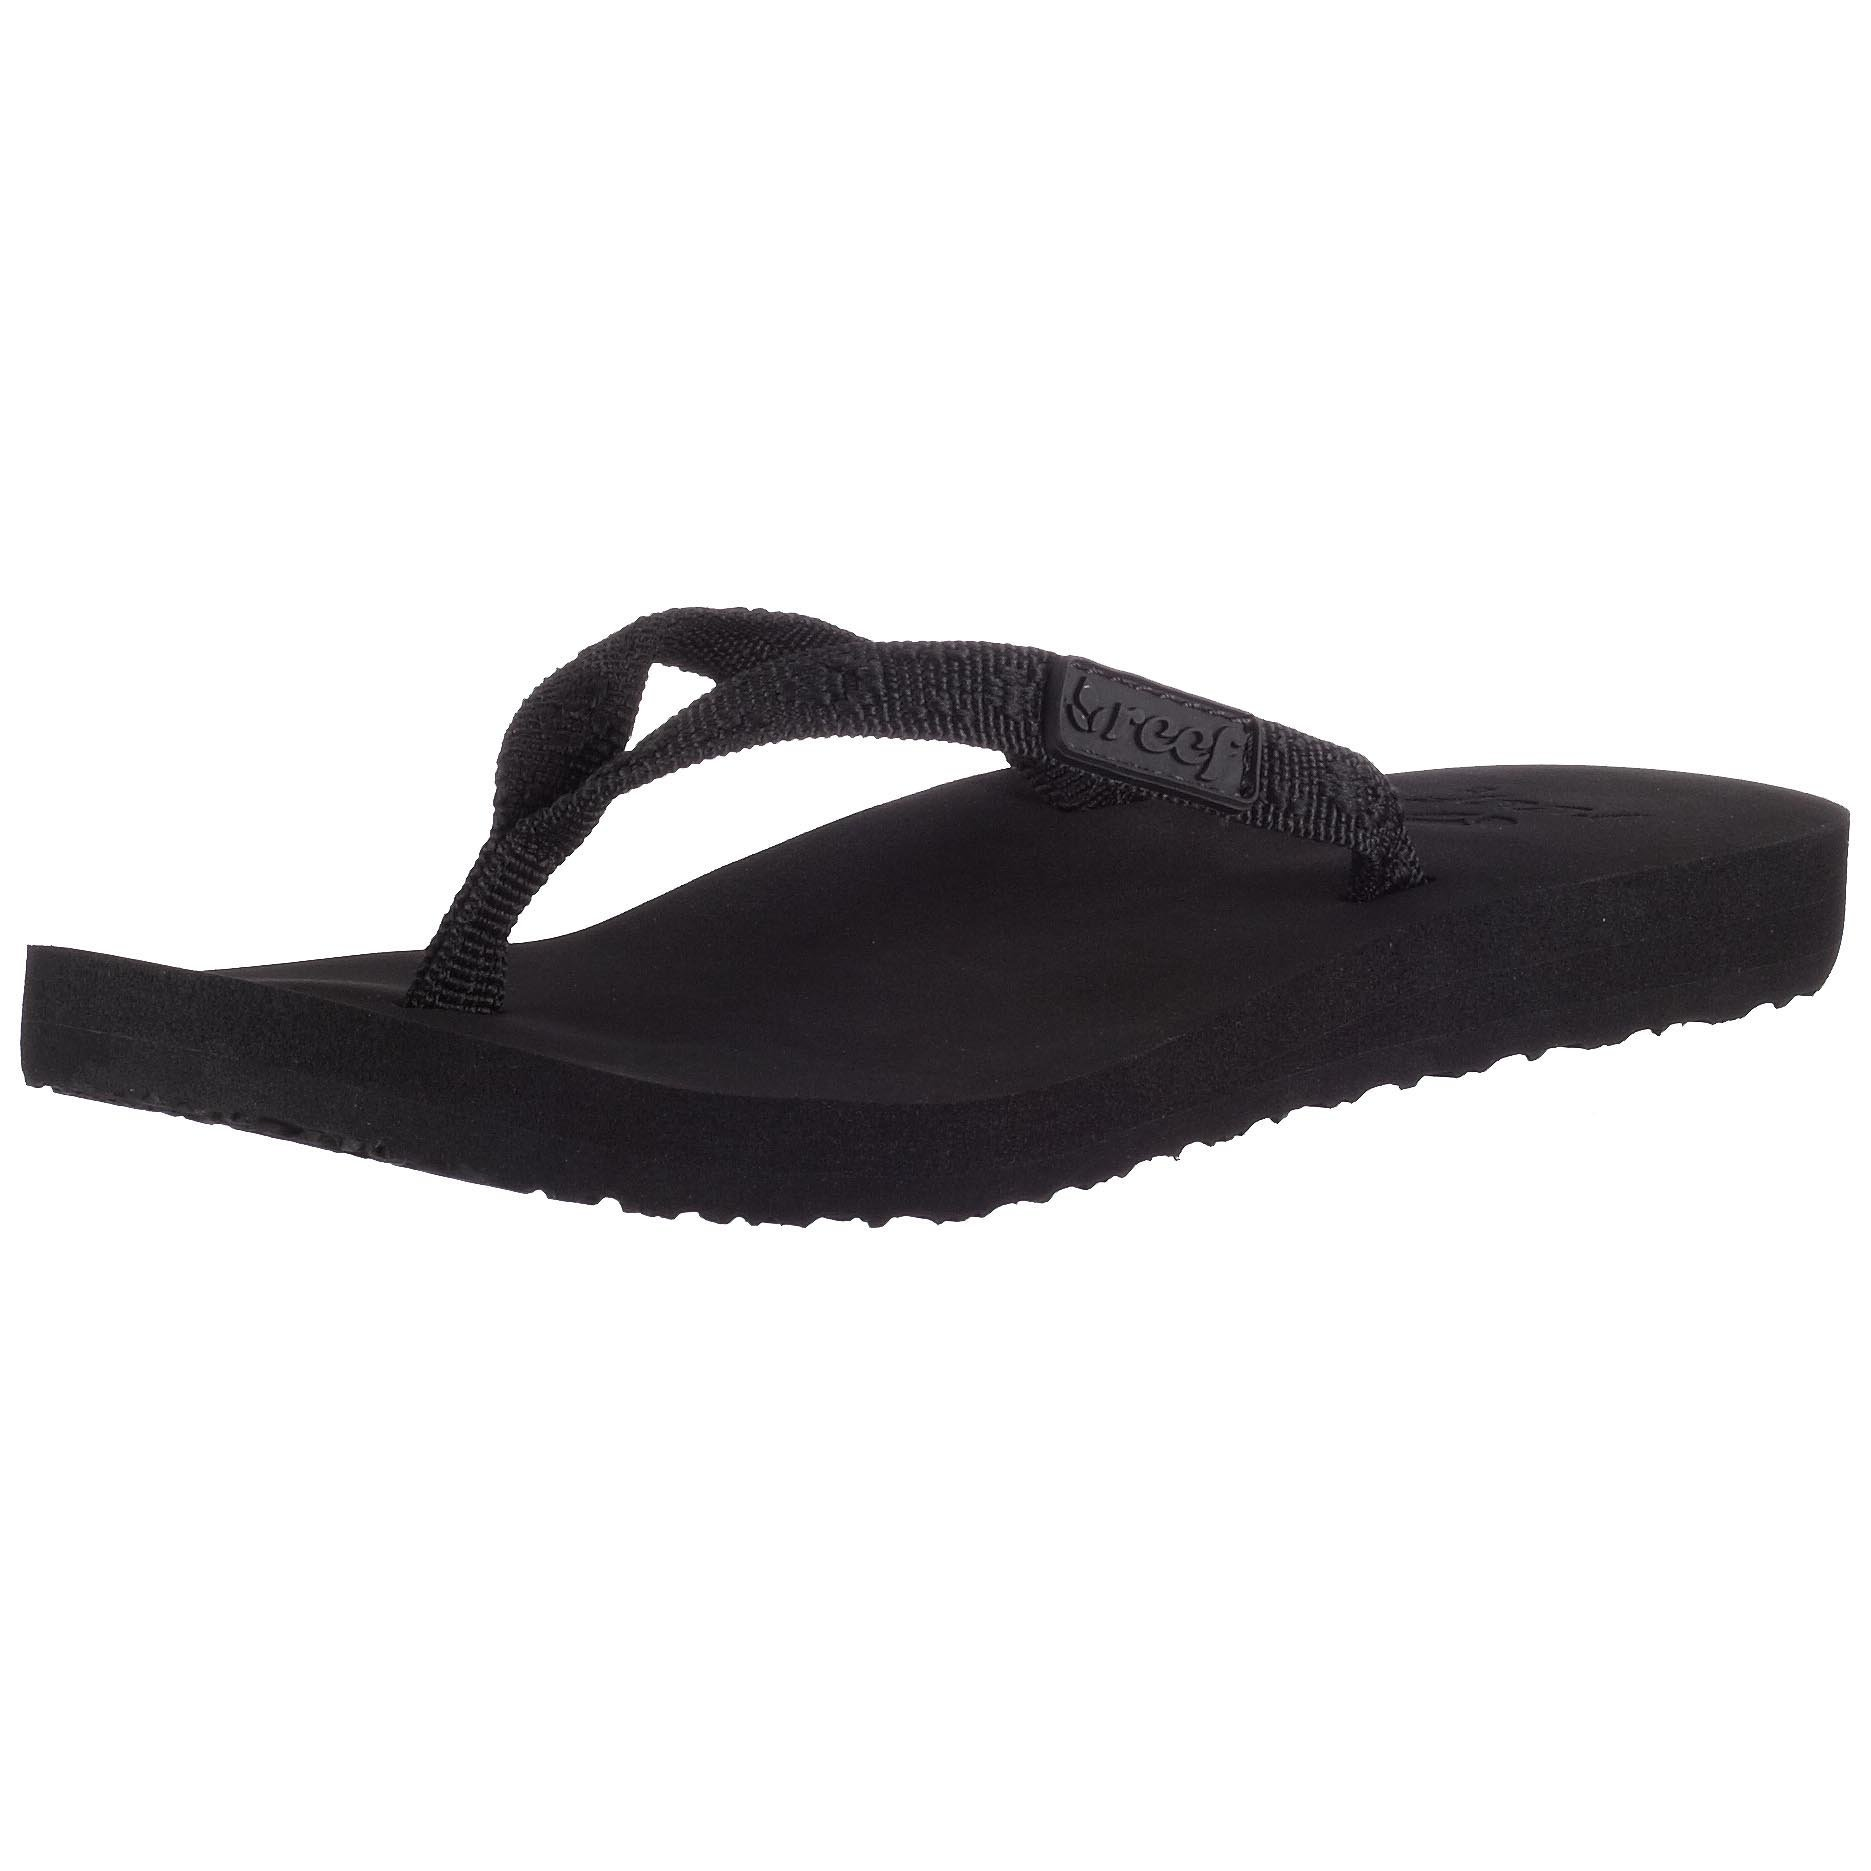 Reef Women's Ginger Flip Flop